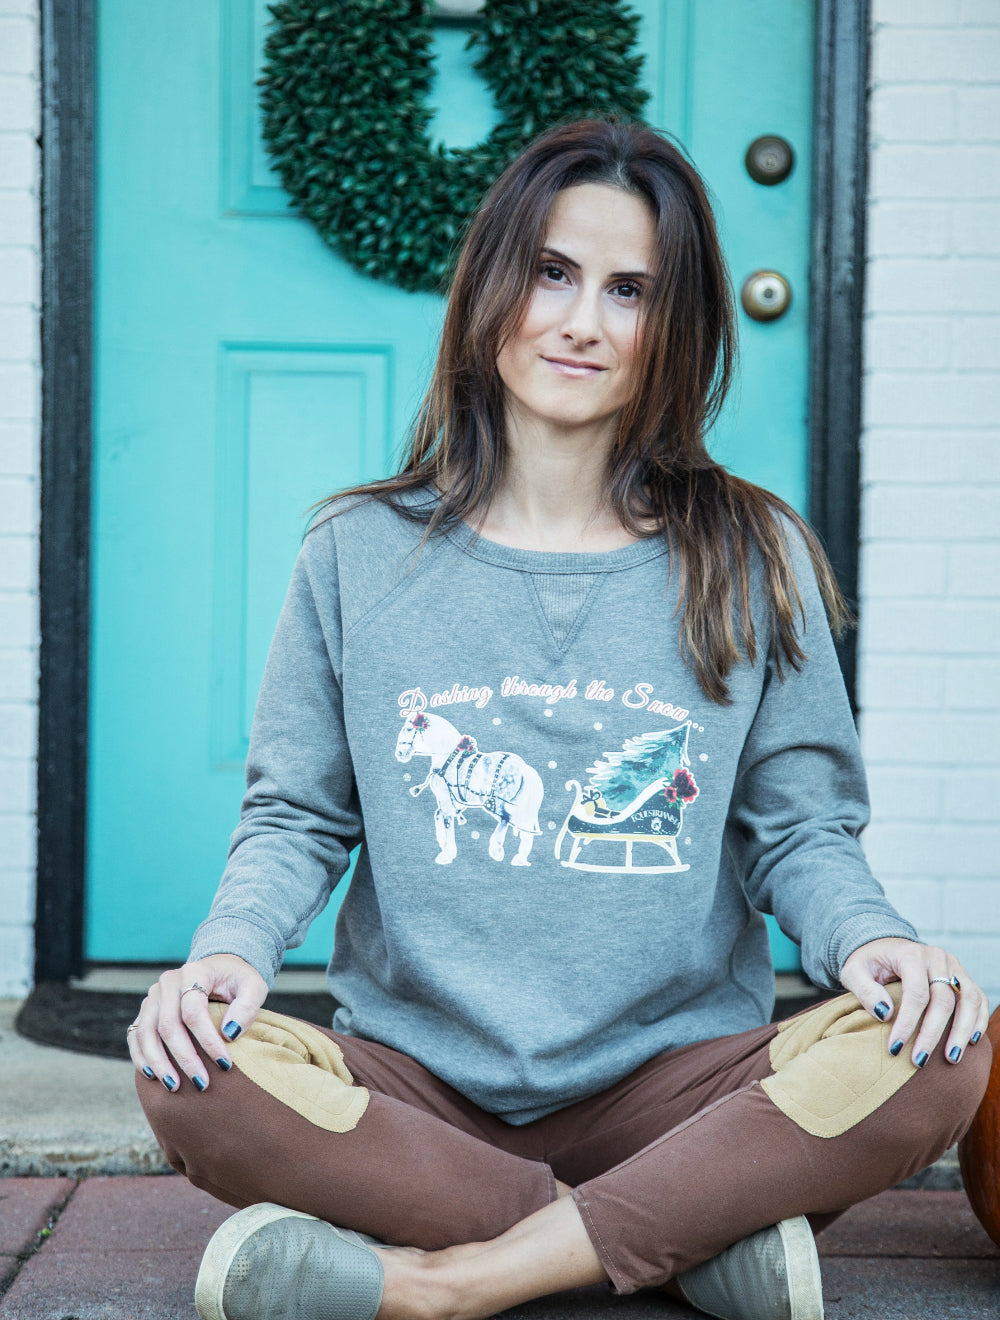 Equestrianista One Horse Open Sleigh holiday pullover modeled by Horse Glam Equestrian Lifestyle Blogger.